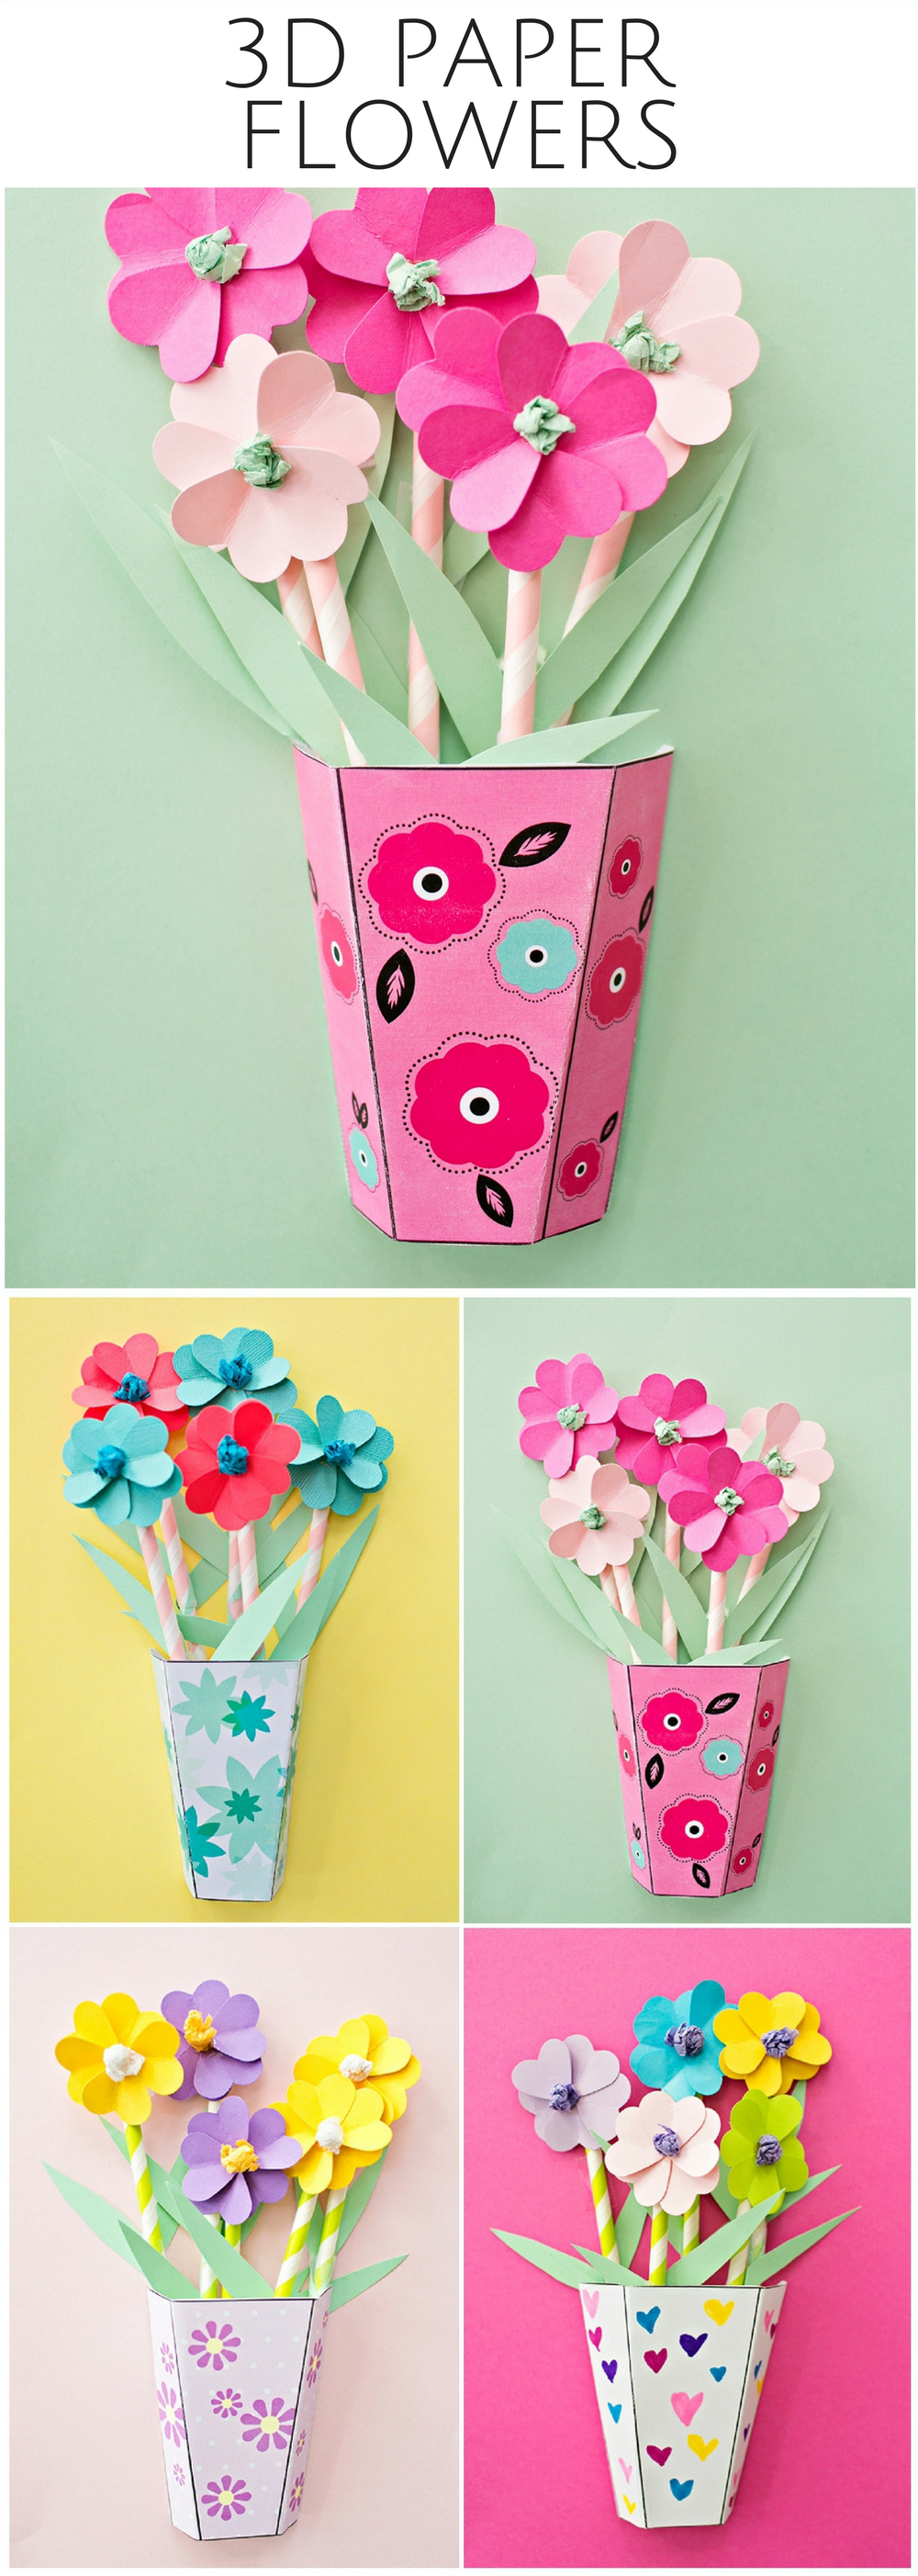 Paper Craft Ideas For Kids Videos Part - 17: How To Make Paper Flower Bouquets With Video And Free Templates. Great Gift  For Motheru0027s Day And Paper Craft For Kids!